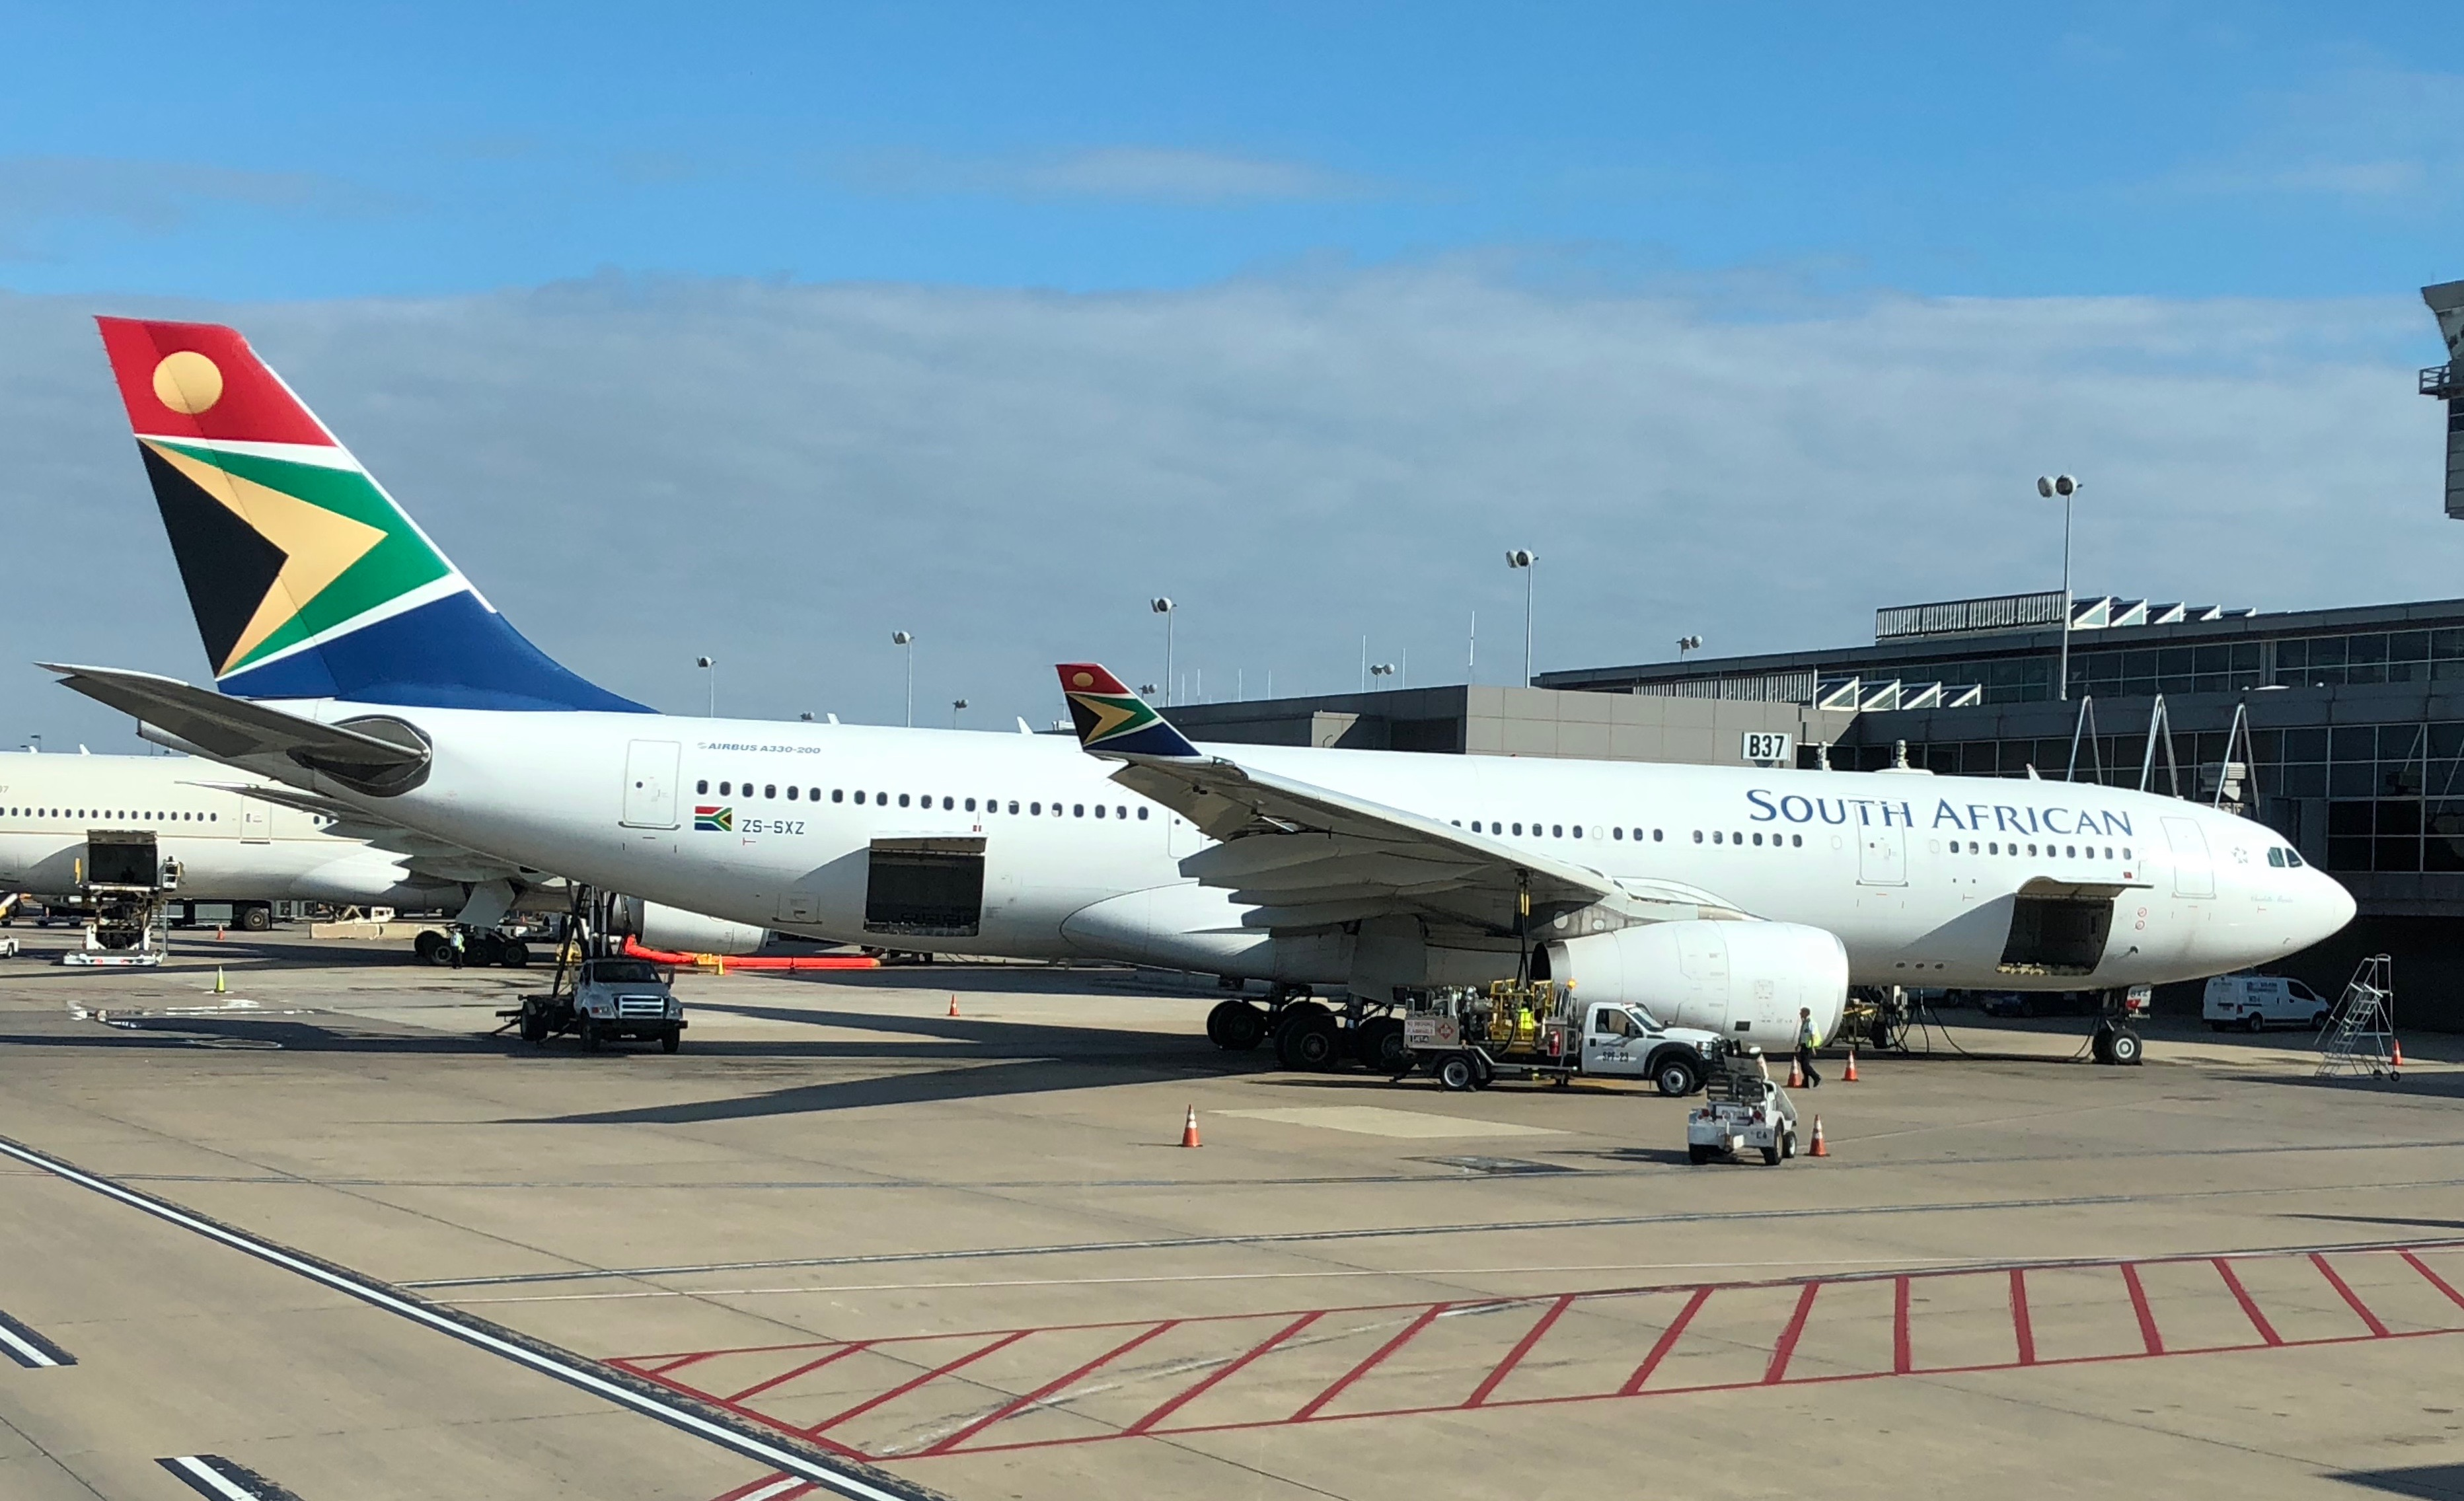 A South African Airways Airbus A330-200